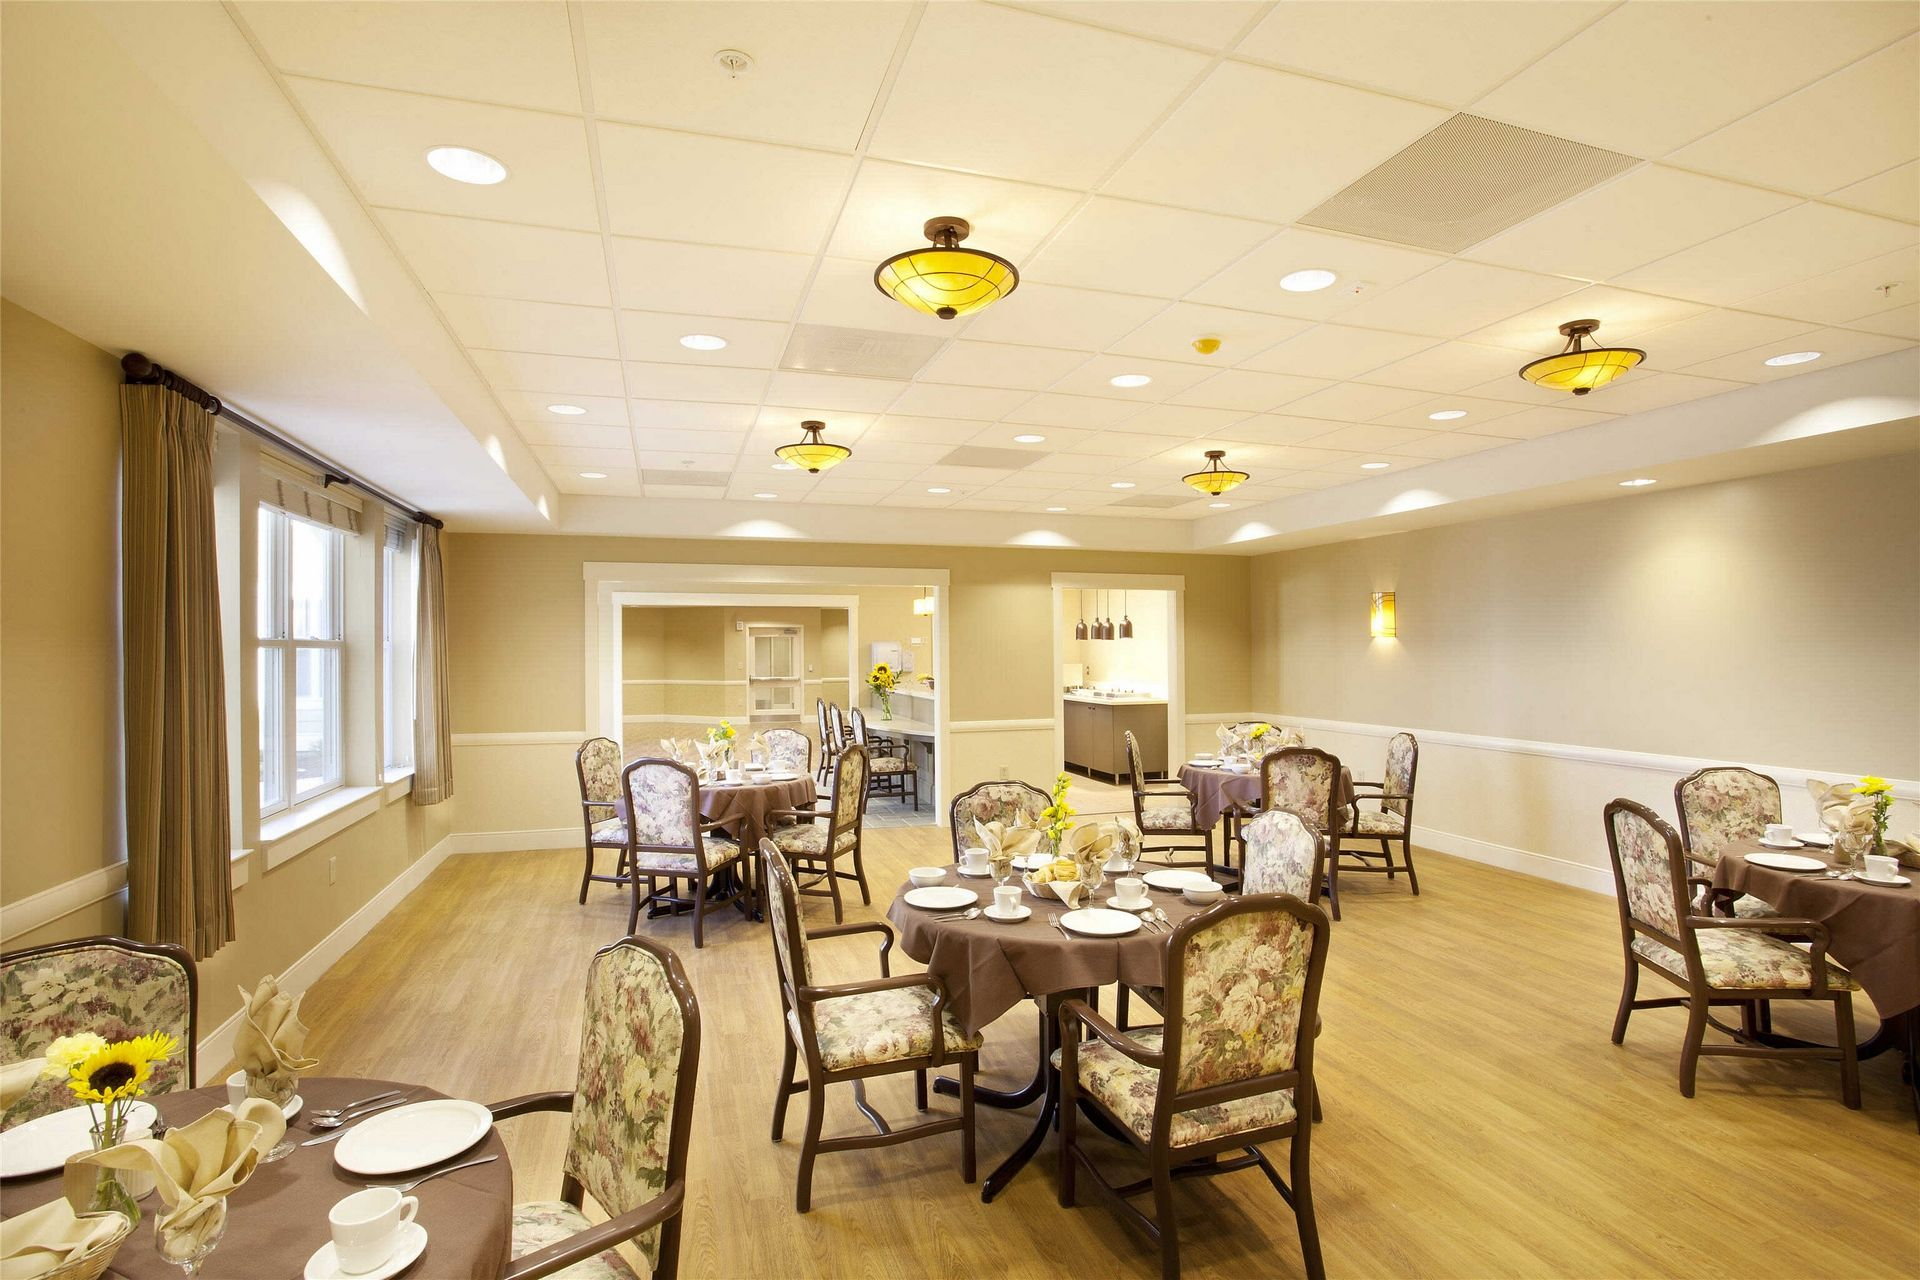 Kahl Home Skilled Nursing Design Dining